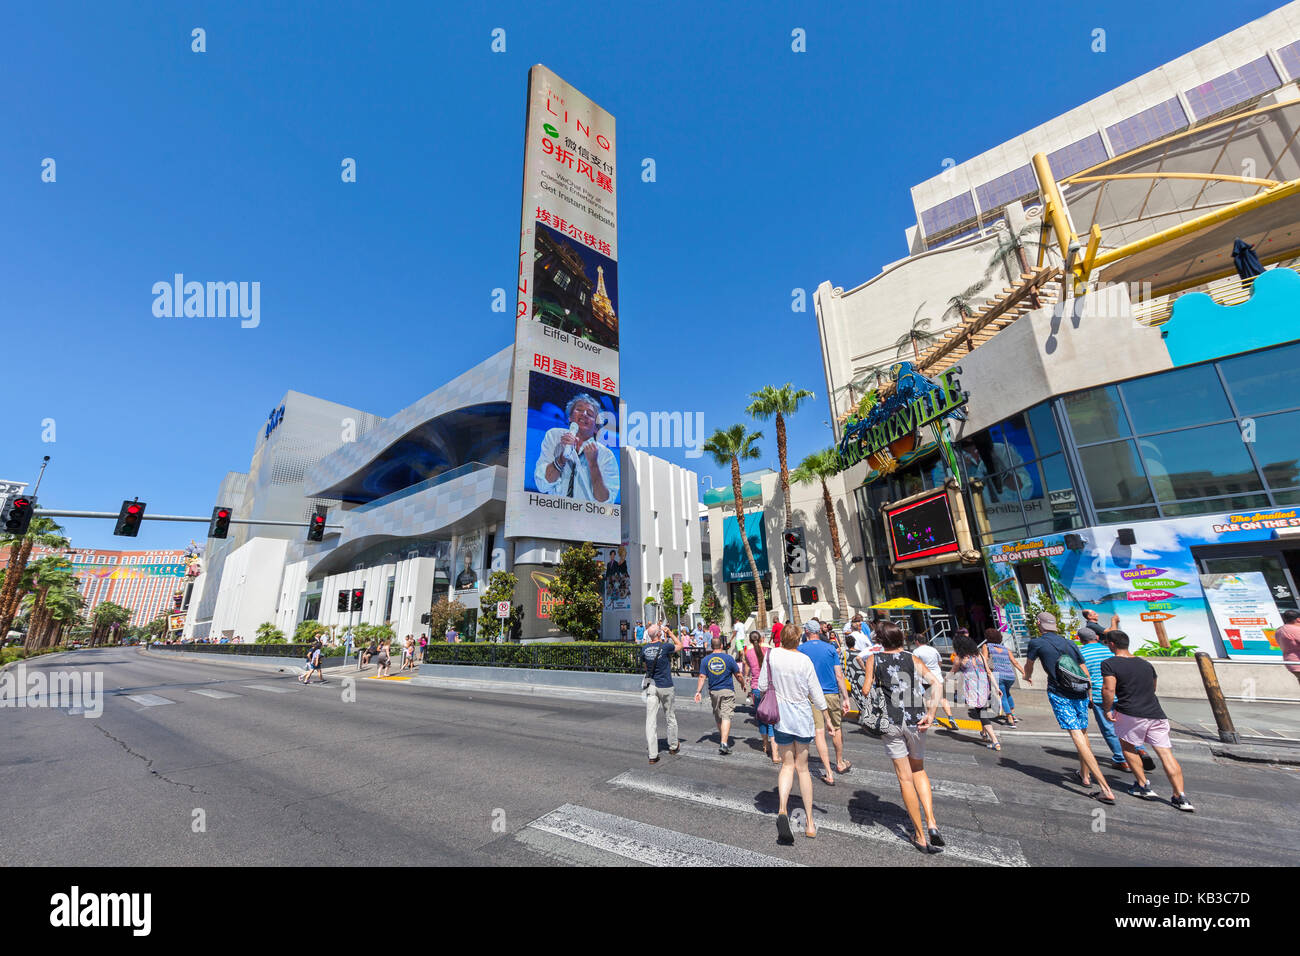 Tourists cross the Las Vegas Blvd in Las Vegas, Nevada. - Stock Image